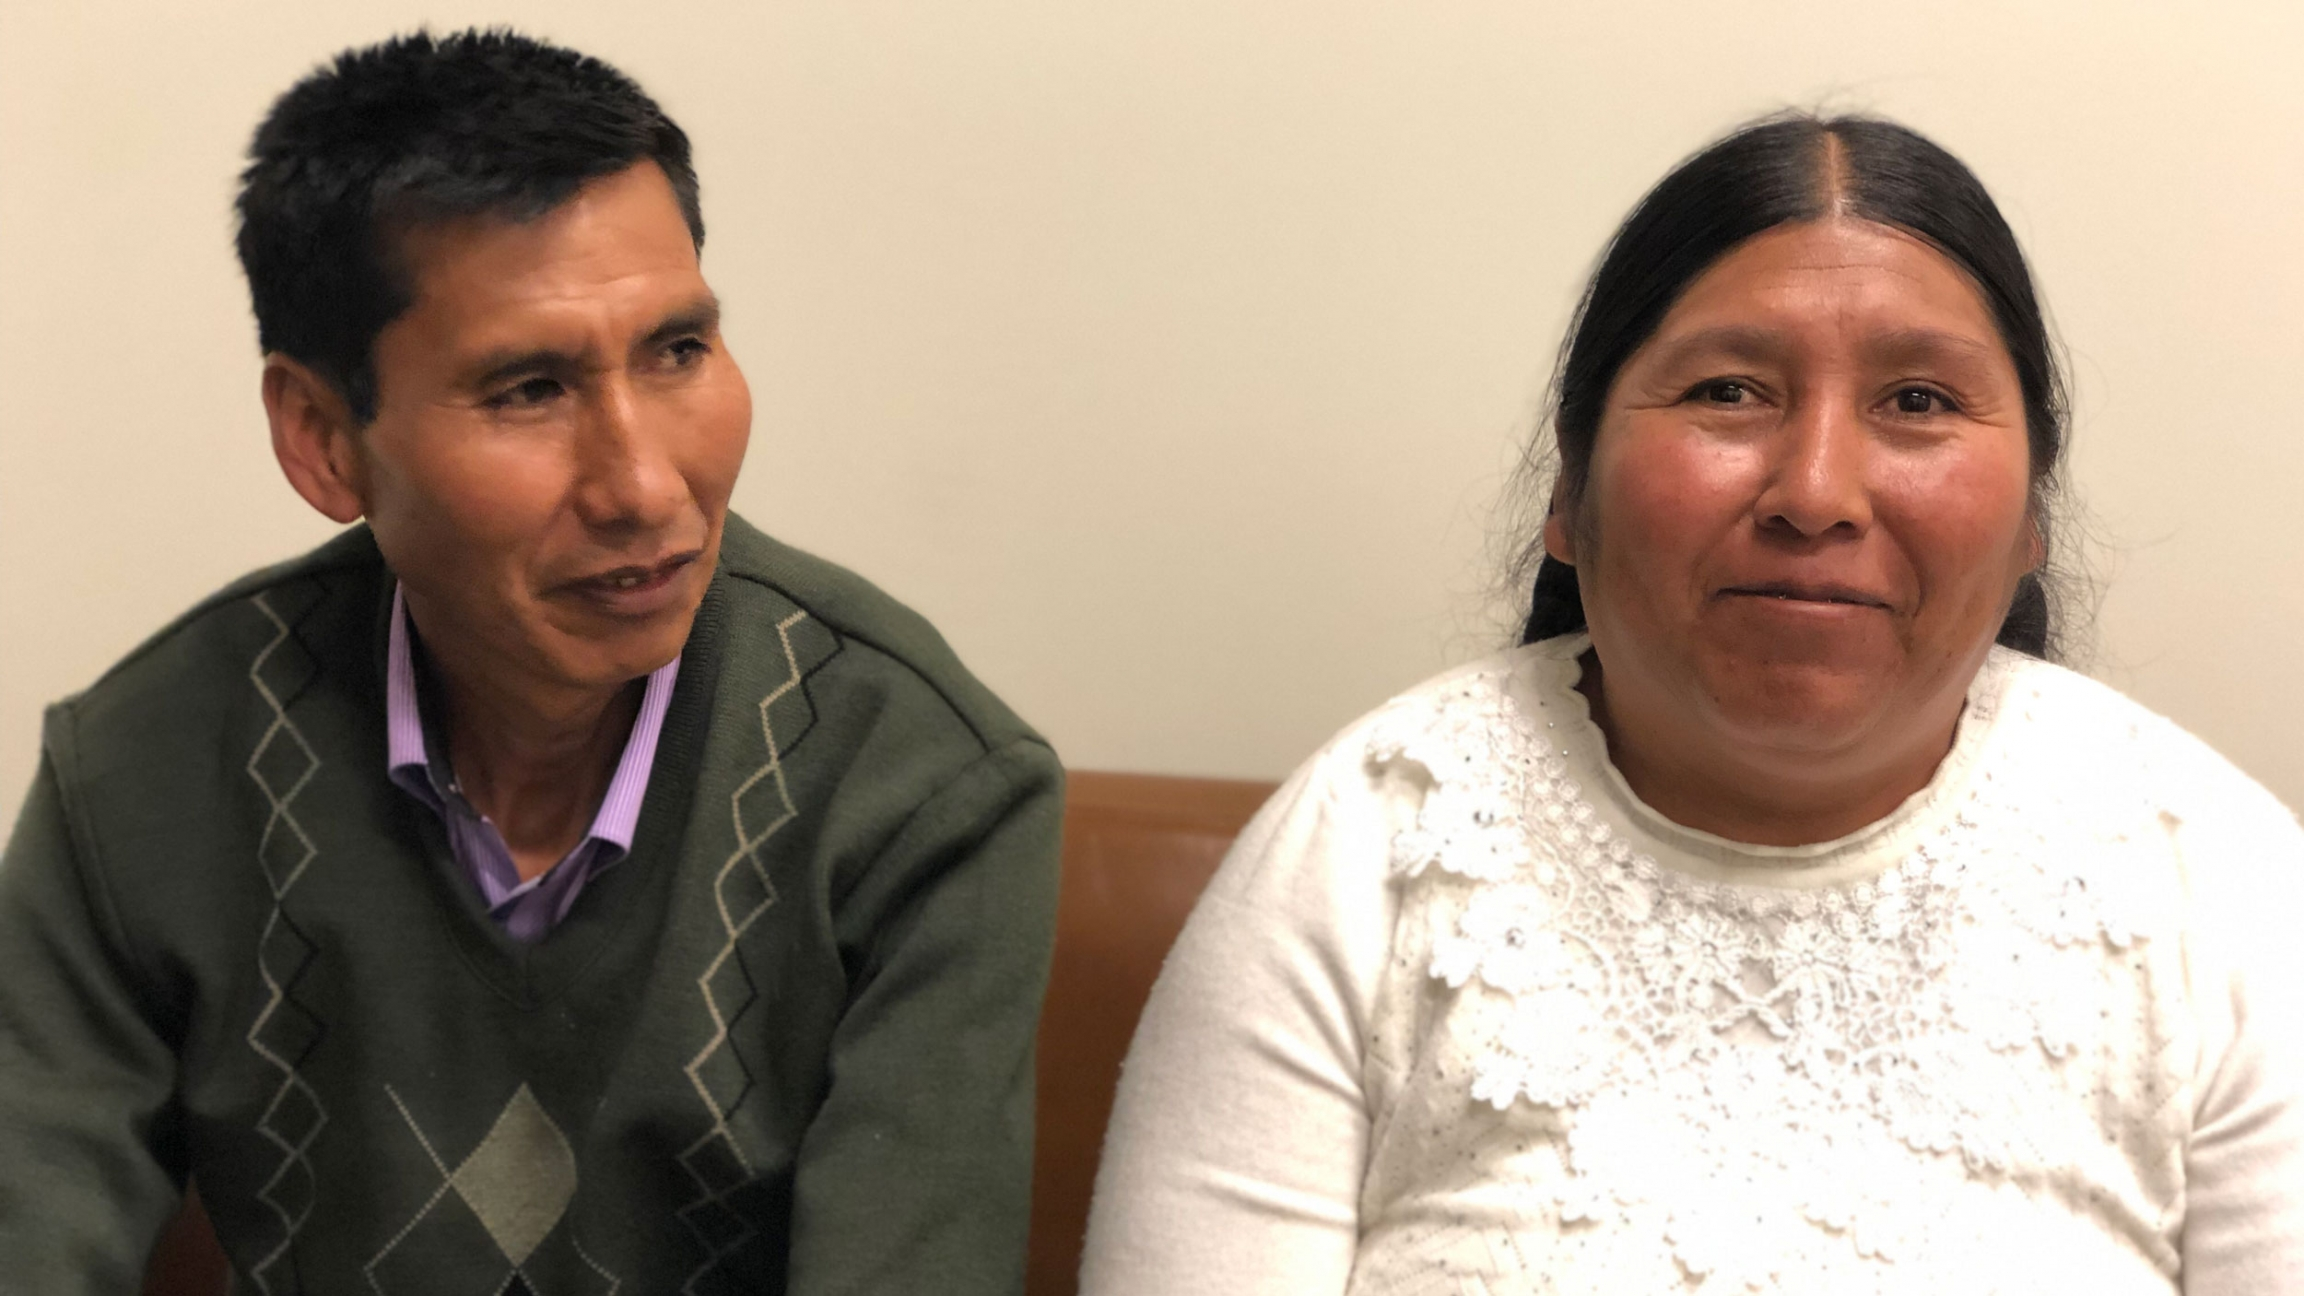 Etelvina Ramos Mamani and Eloy Rojas Mamani spoke with The World in Boston, after meeting with lawyers from Harvard's International Human Rights Law Clinic.